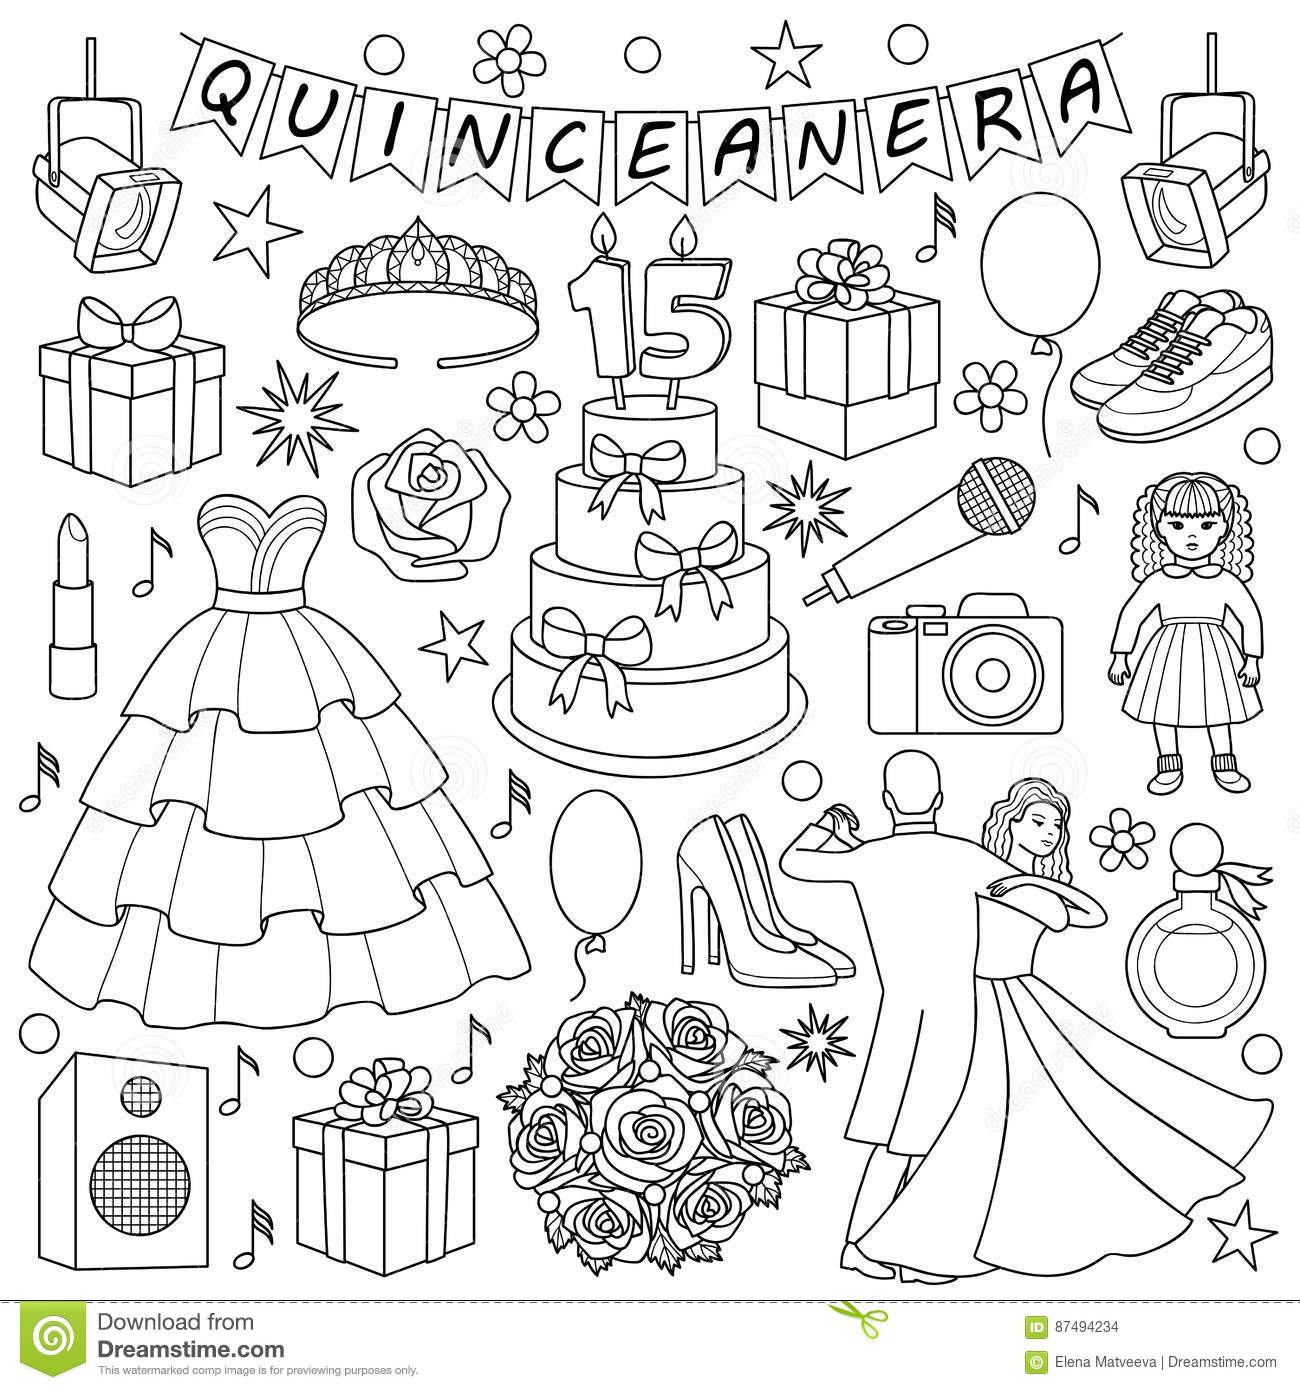 Quinceanera Cartoons, Illustrations & Vector Stock Images